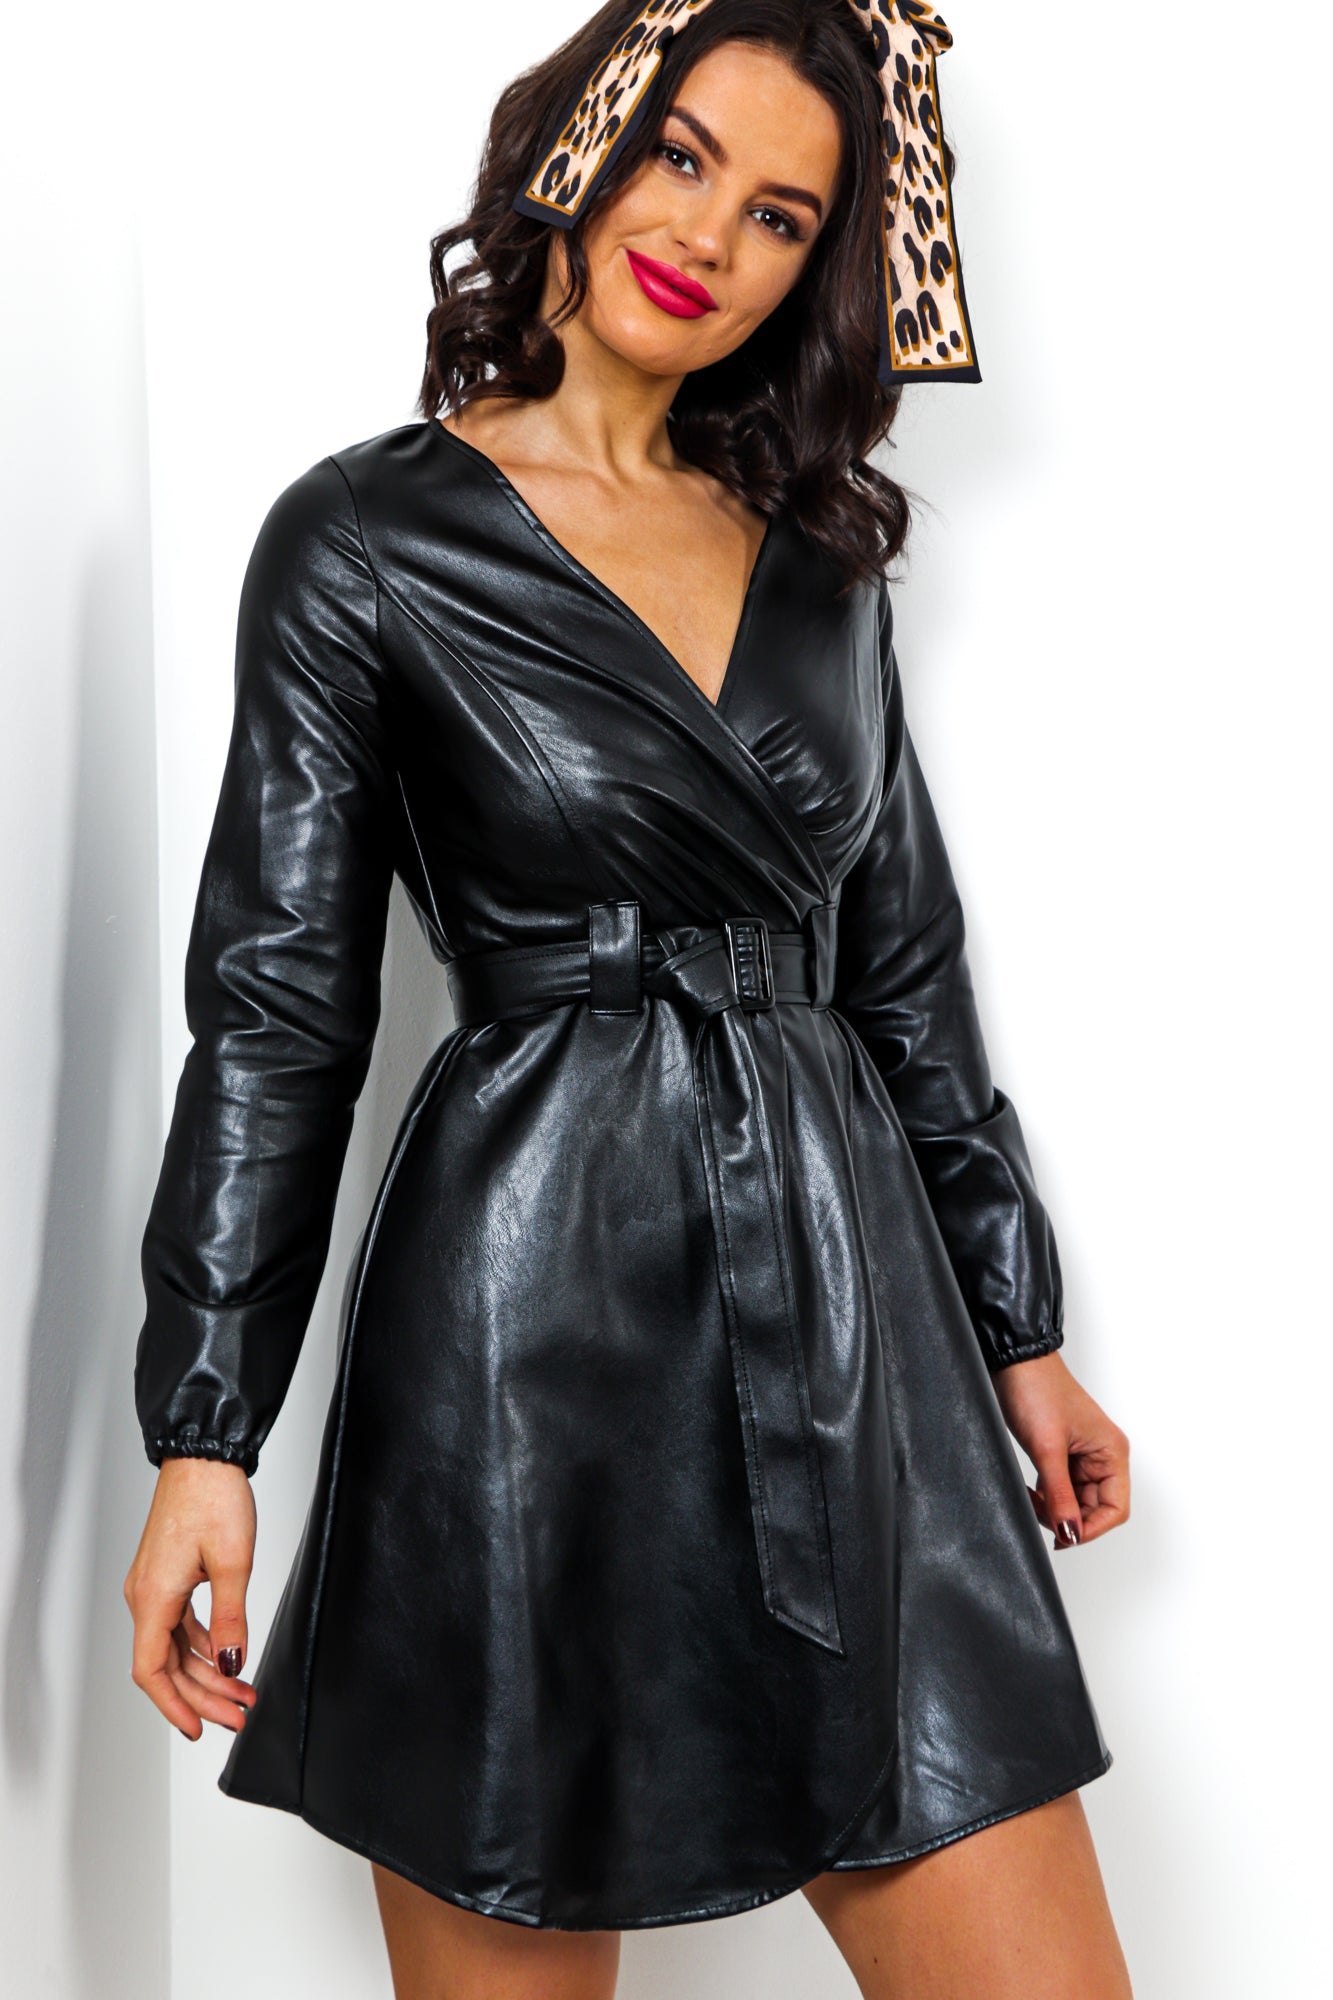 Leather Have I Ever - Dress In BLACK